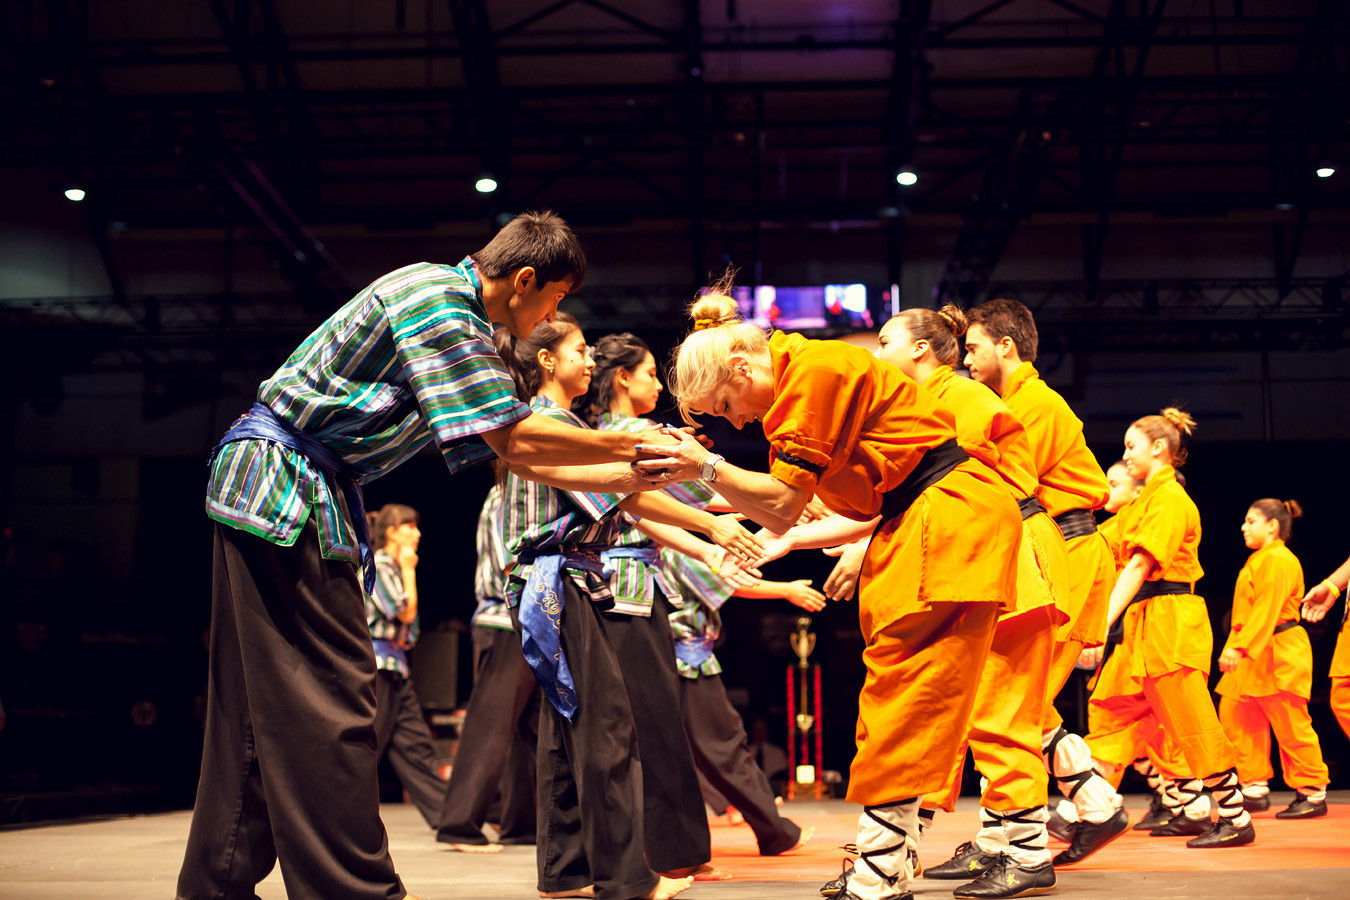 international-martial-arts-festival-nationals-64